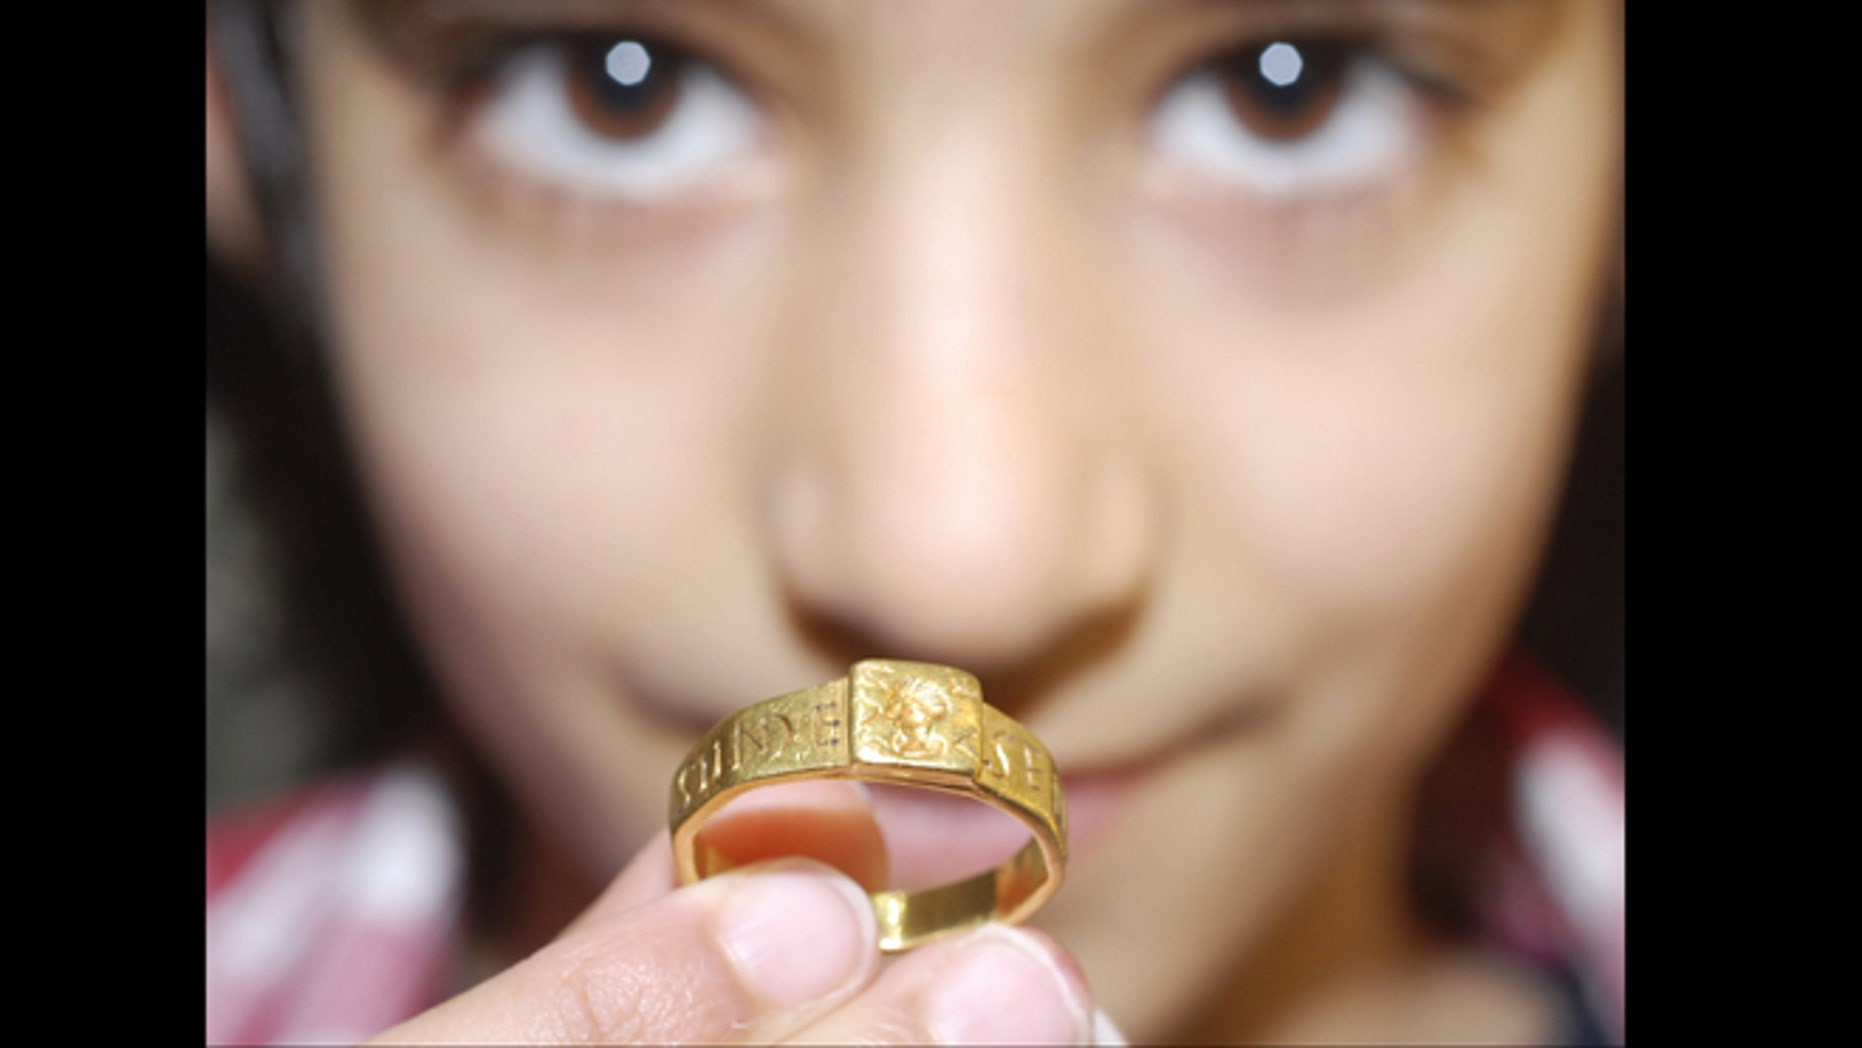 """April 2, 2013: A Roman gold ring that could have inspired J.R.R Tolkien to write """"The Hobbit"""" and """"The Lord of the Rings"""" is going on exhibition in England. Found in a field in southern England in 1785, the ring is linked to a Roman tablet inscribed with a curse on the thief who stole it."""